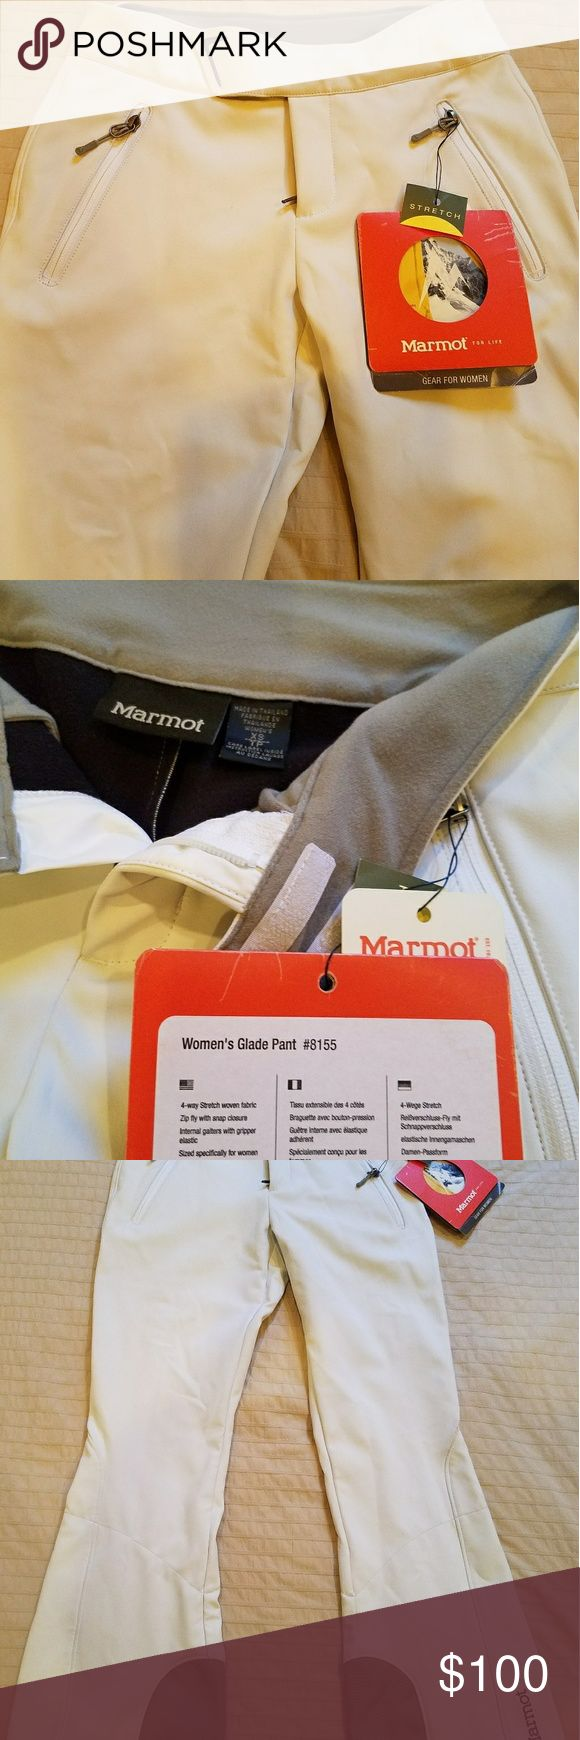 Marmot glade ski women's pants white XS Marmot glade ski women's pants white XS. New w/tags. A little dirty from being in my car, nothing a wash can't take care of. Open to make offers. Marmot Pants Trousers